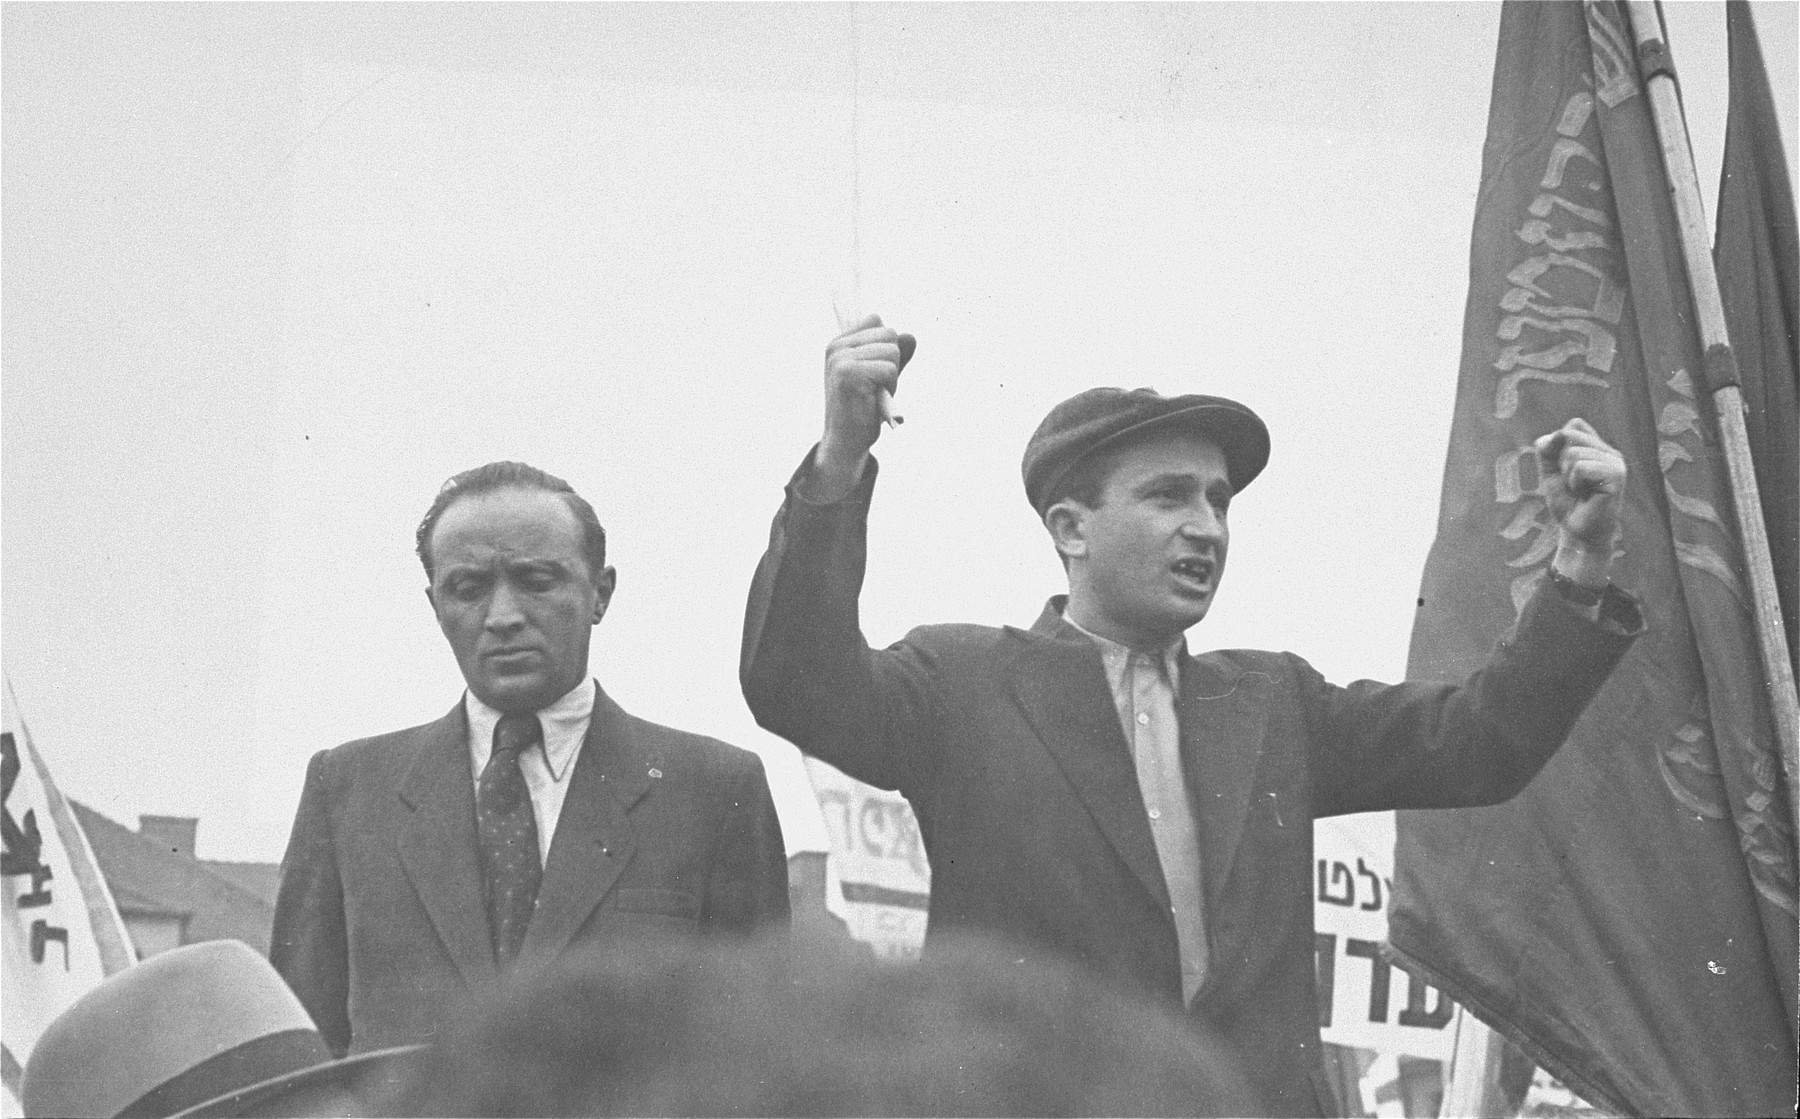 Ephraim Londner raises clenched fists during his speech at a demonstration protesting the return of the Exodus 1947 passengers to Germany at the Bergen-Belsen displaced persons camp.    Standing next to Londner is Josef Rosensaft, chairman of the Central Jewish Committee for the British Zone.